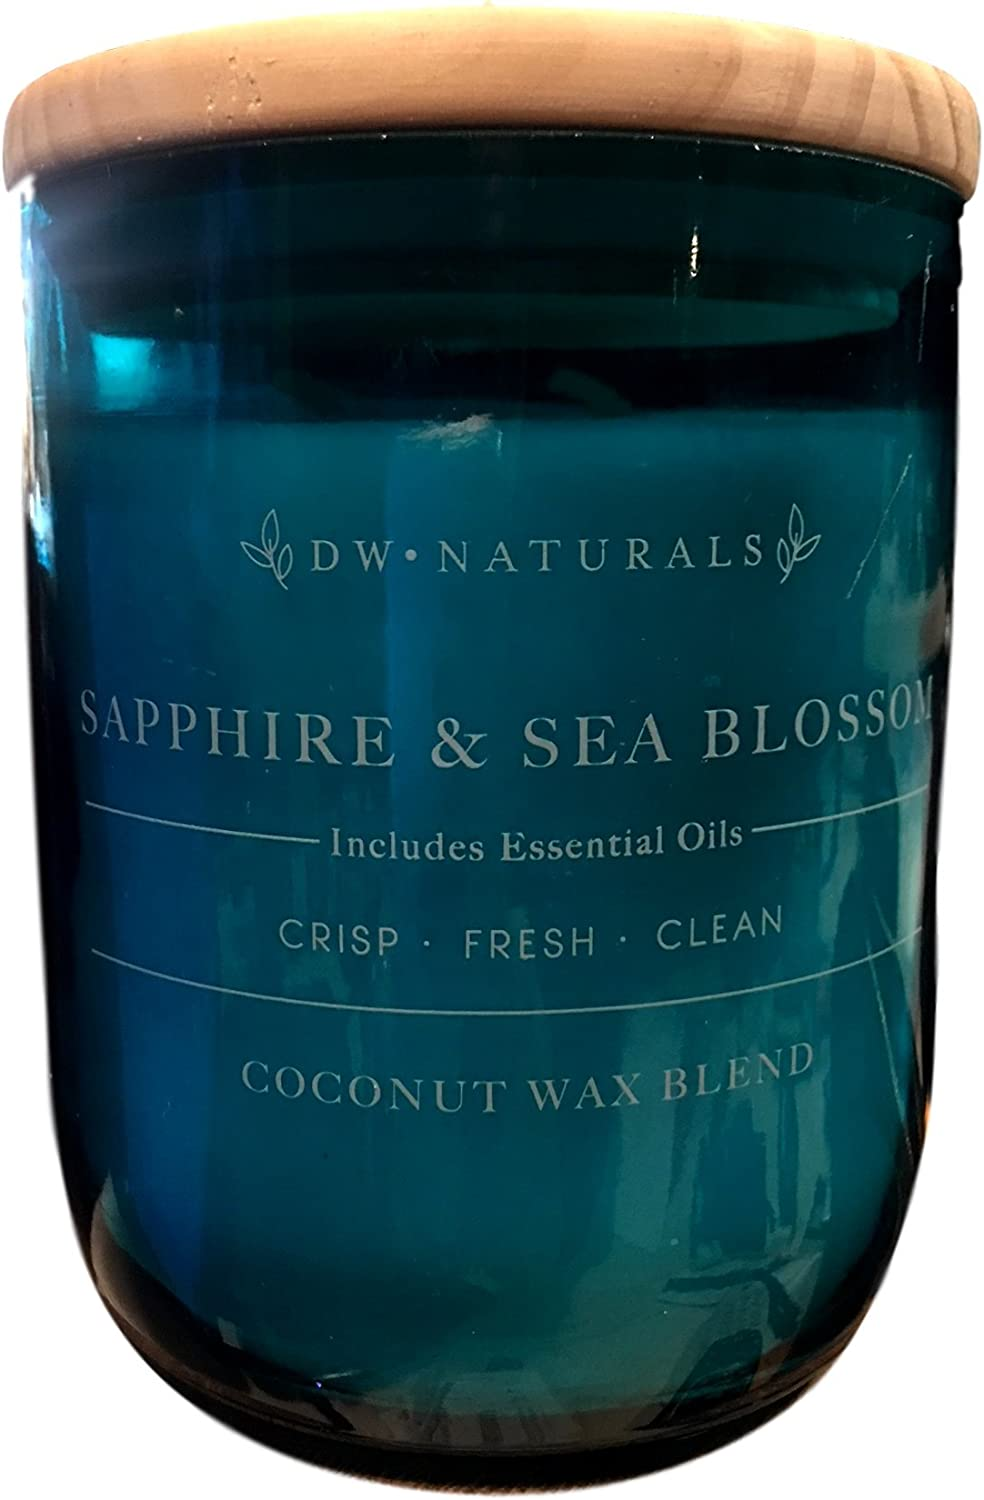 DW Home Naturals Sapphire & Sea Blossom Scented Large 2 Wick Coconut Wax Blend Candle